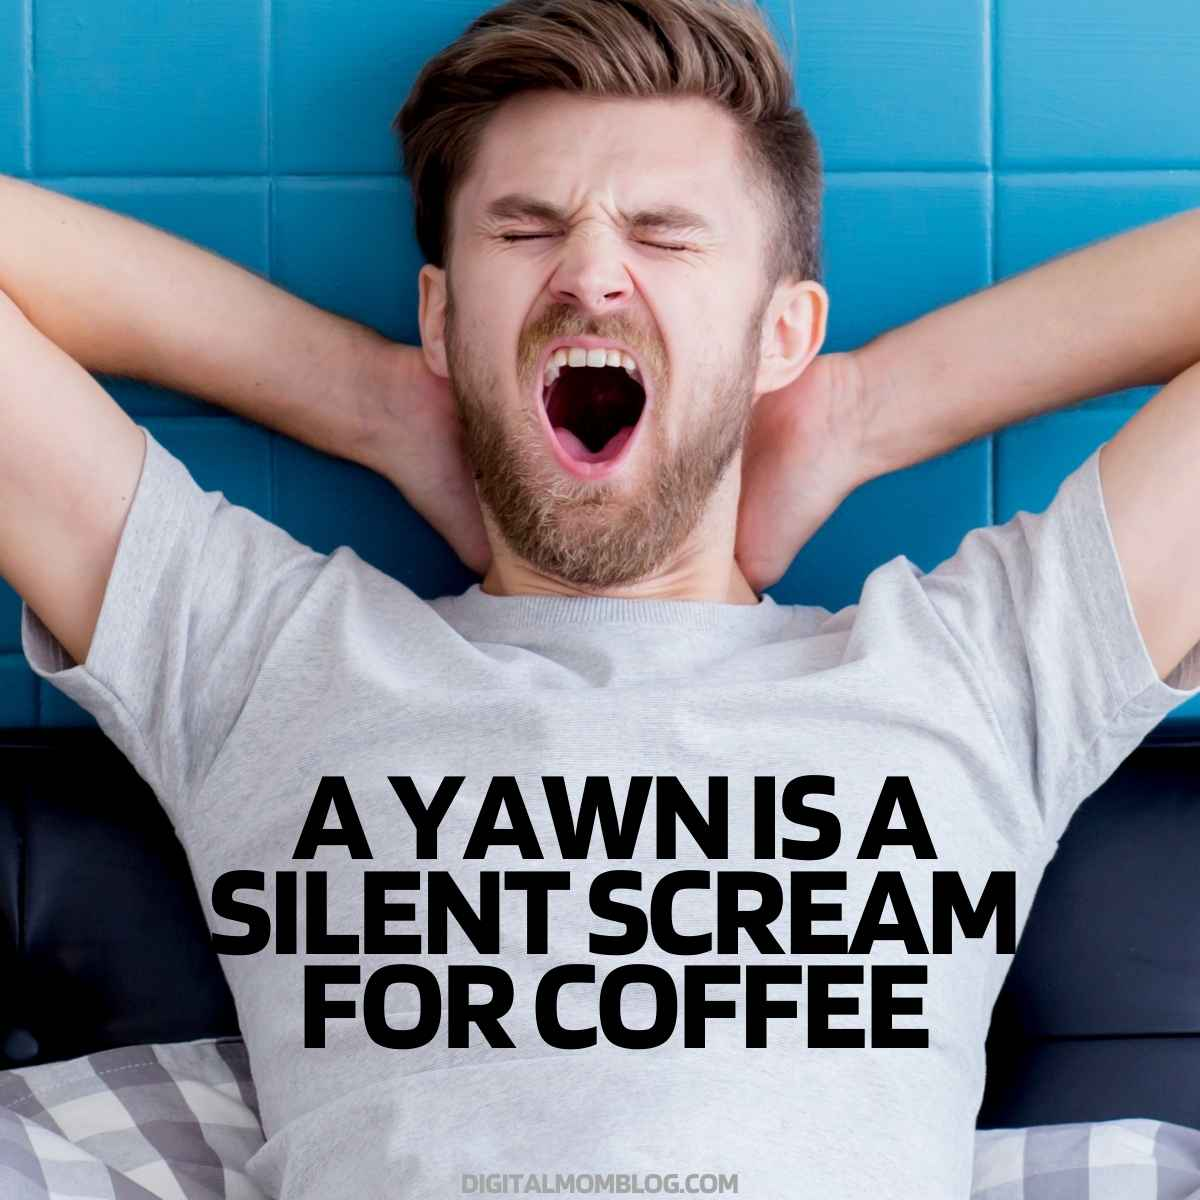 a yawn is a silent scream for coffee meme funny